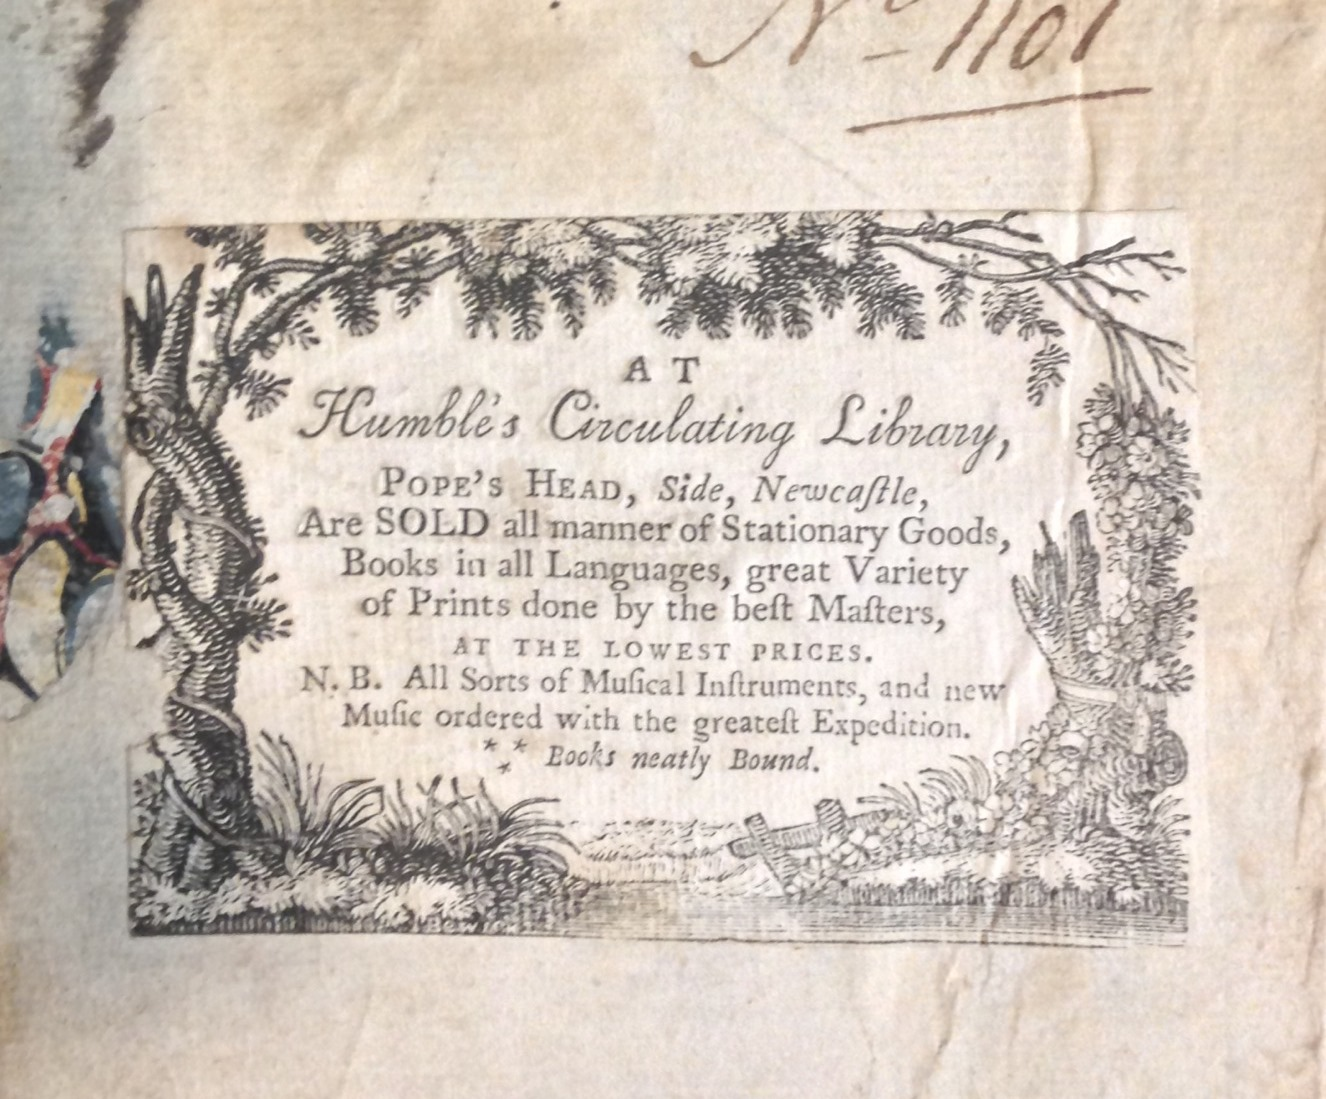 The Small Special Collections Library possesses two copies of the London, 1786 edition. One is in a fine binding with distinguished provenance. The other, rather shabby copy is even more interesting, for it bears the contemporary wood-engraved label--by Thomas Bewick, no less!--of Humble's Circulatign Library in Newcastle.